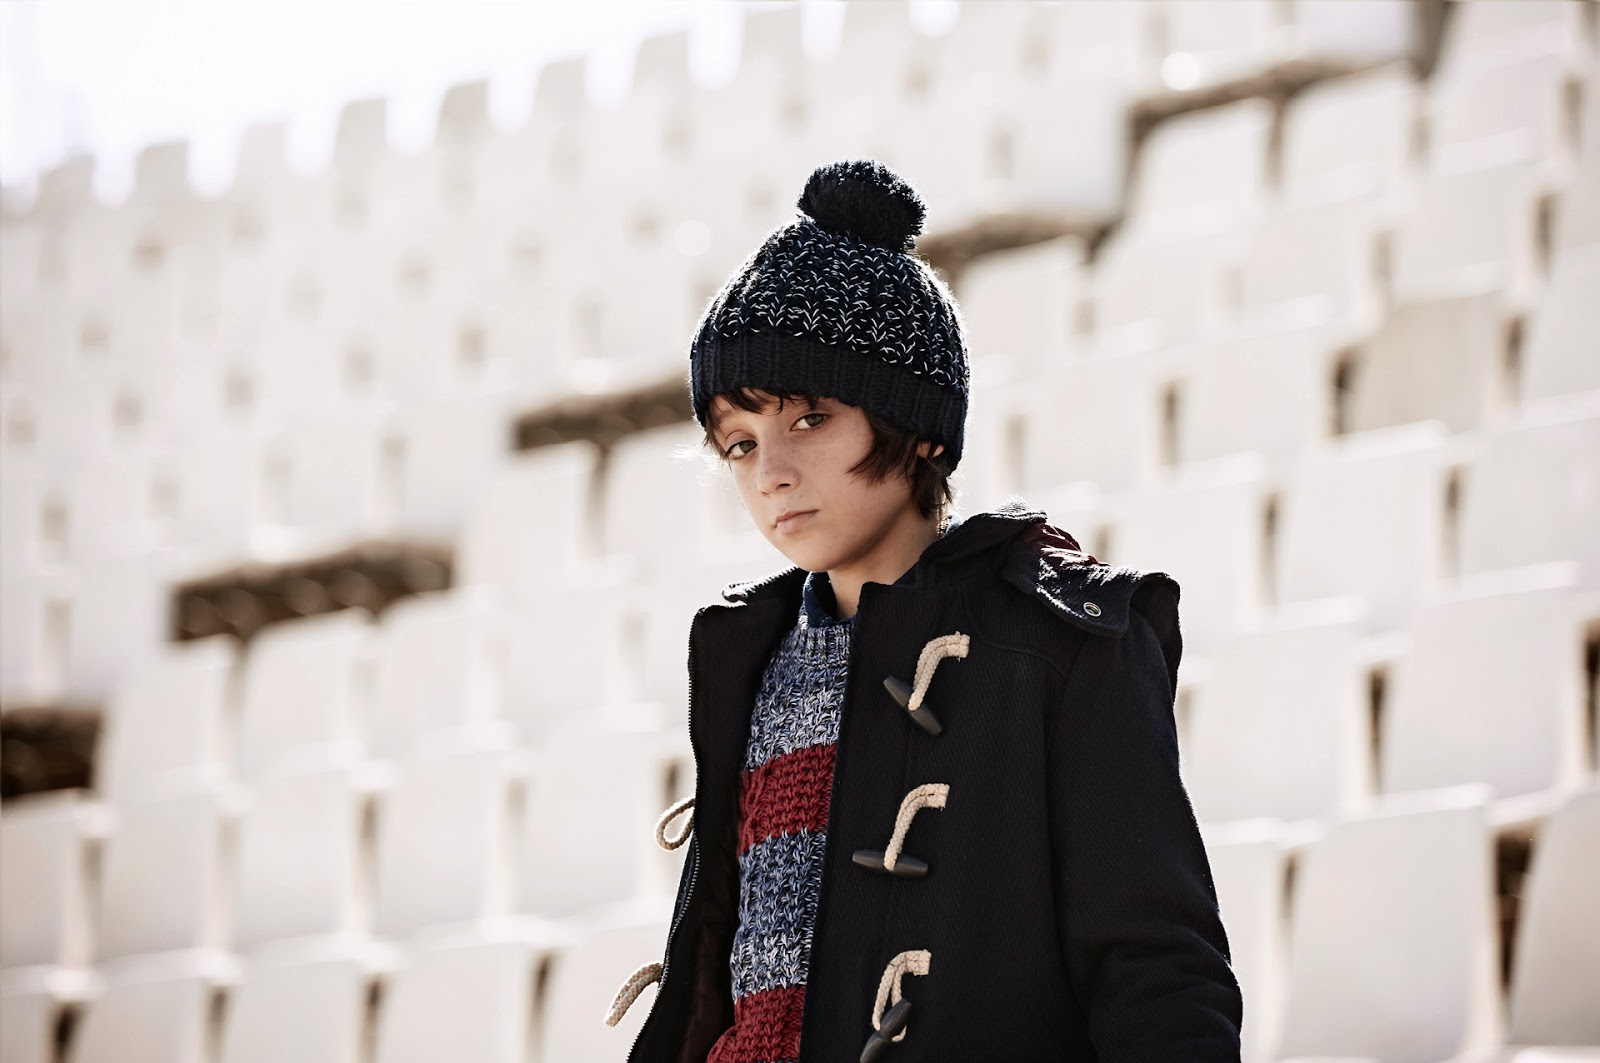 Mango Kids 'The Cycle Track' Lookbook Fall/Winter 2014